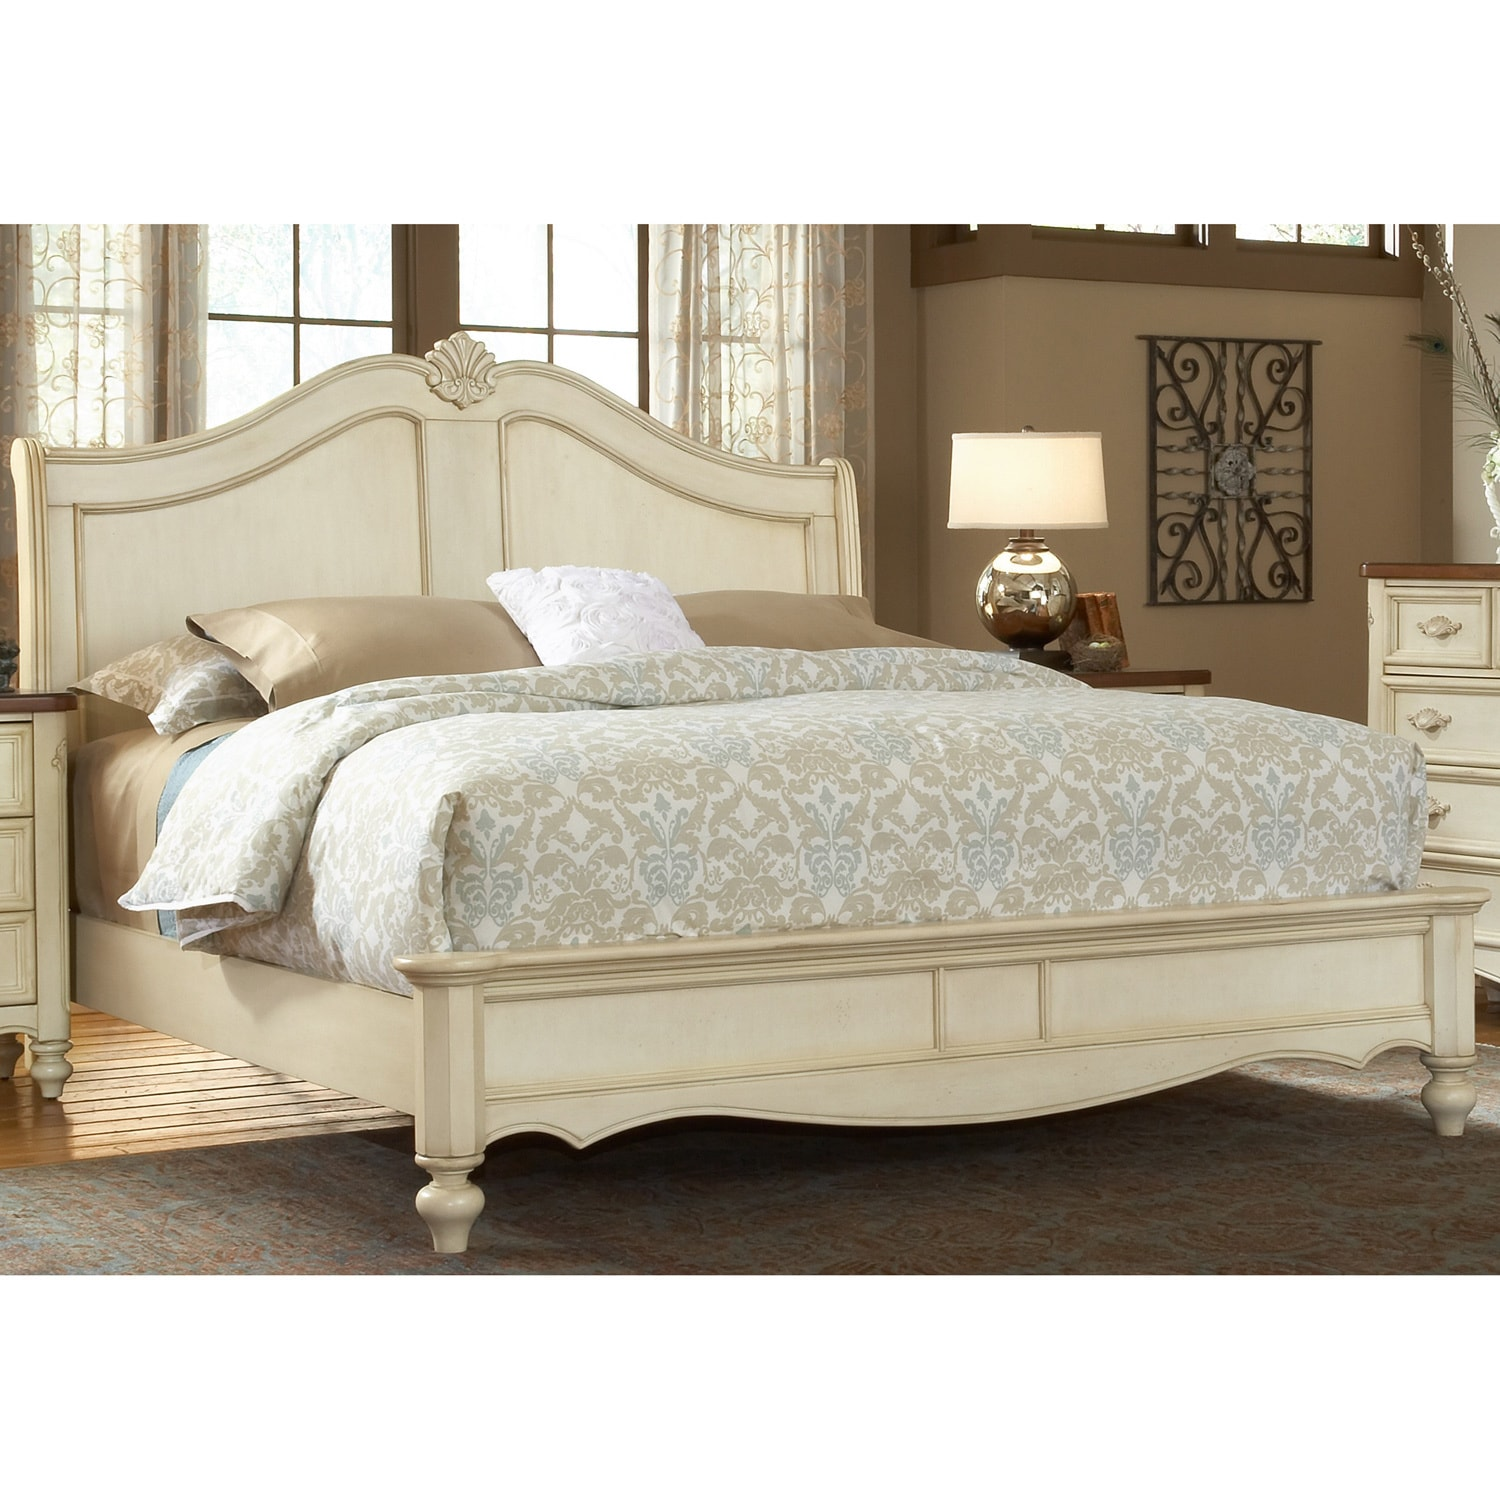 Crescent Manor Antique White Sleigh Bed by Greyson Living...